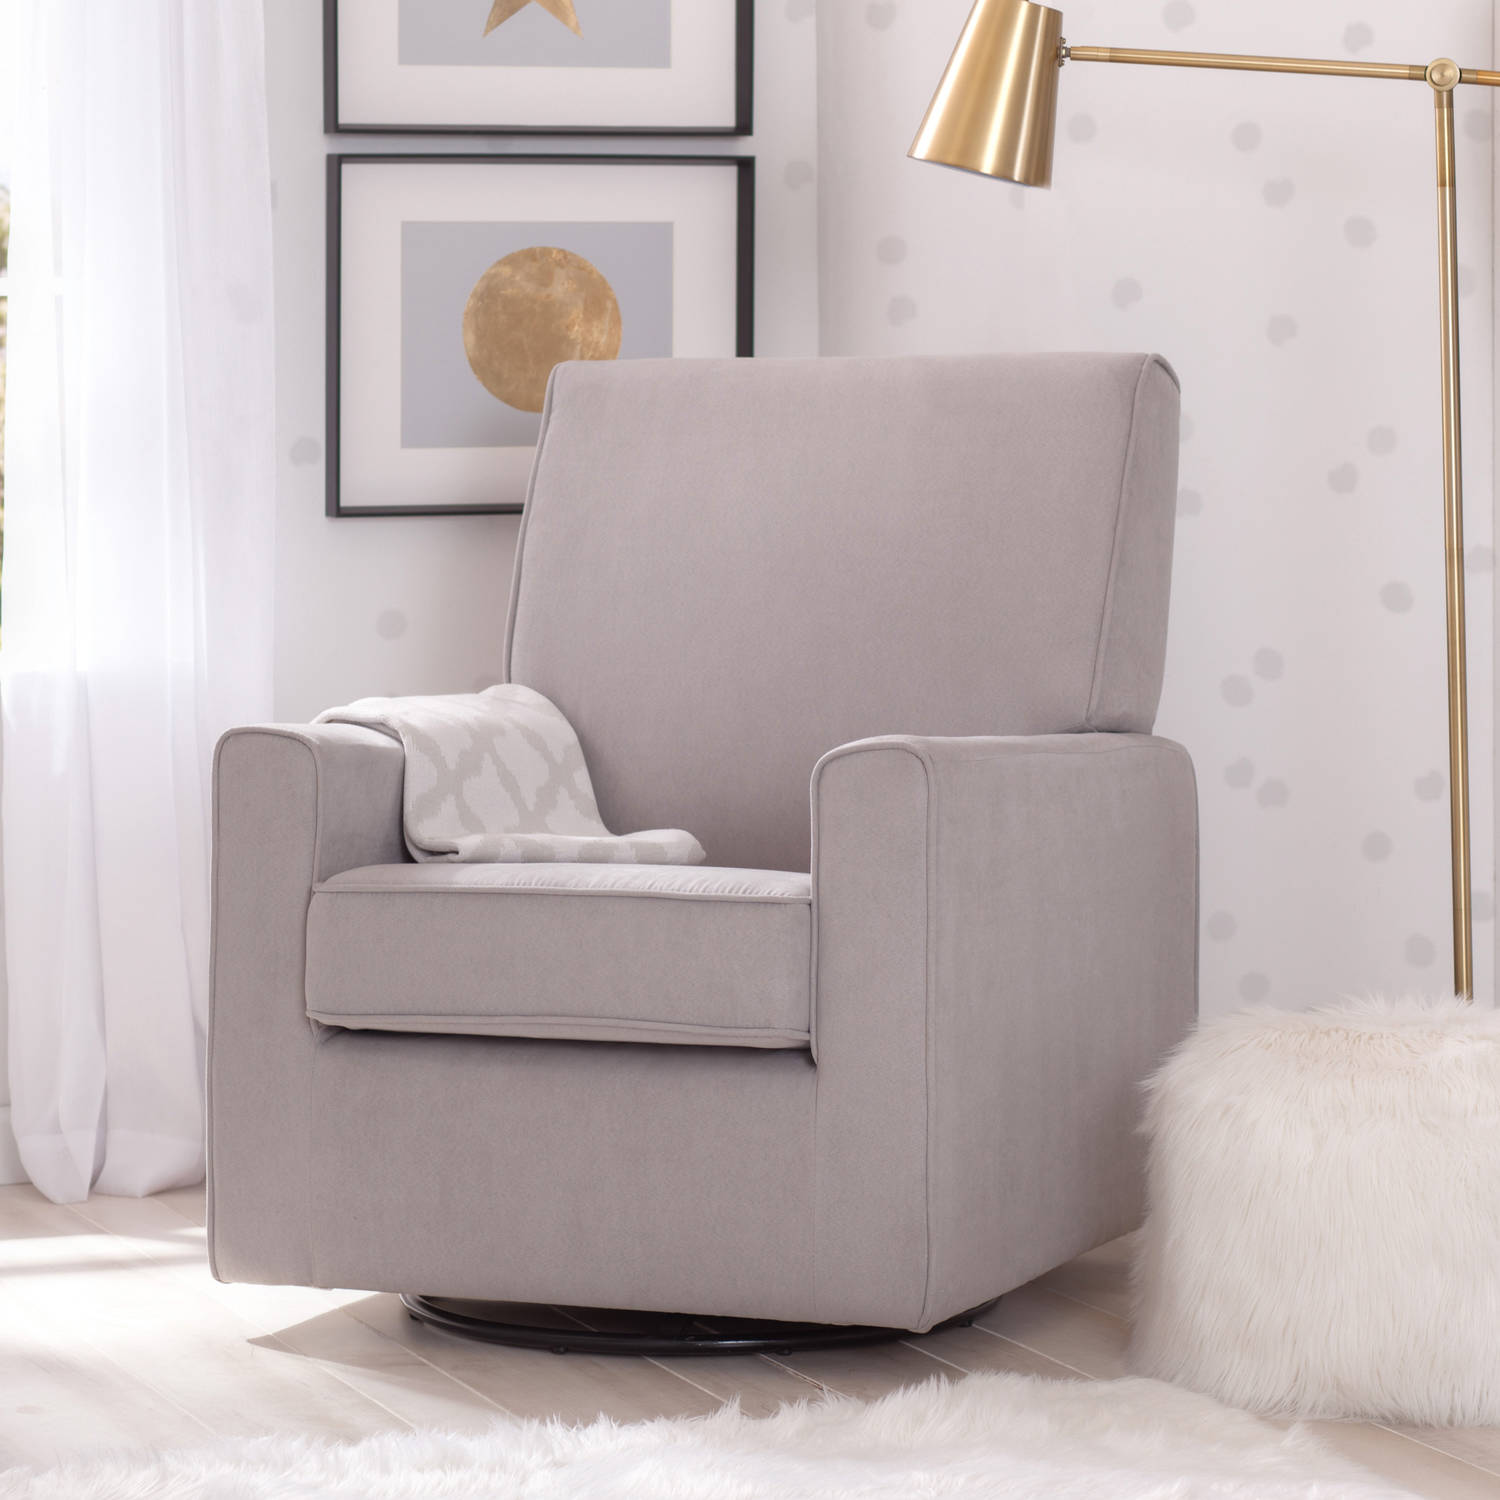 2014 at 768 215 768 in elegant collection of cushioned rocking chairs - Delta Children Ava Nursery Glider Swivel Rocker Chair Dove Grey